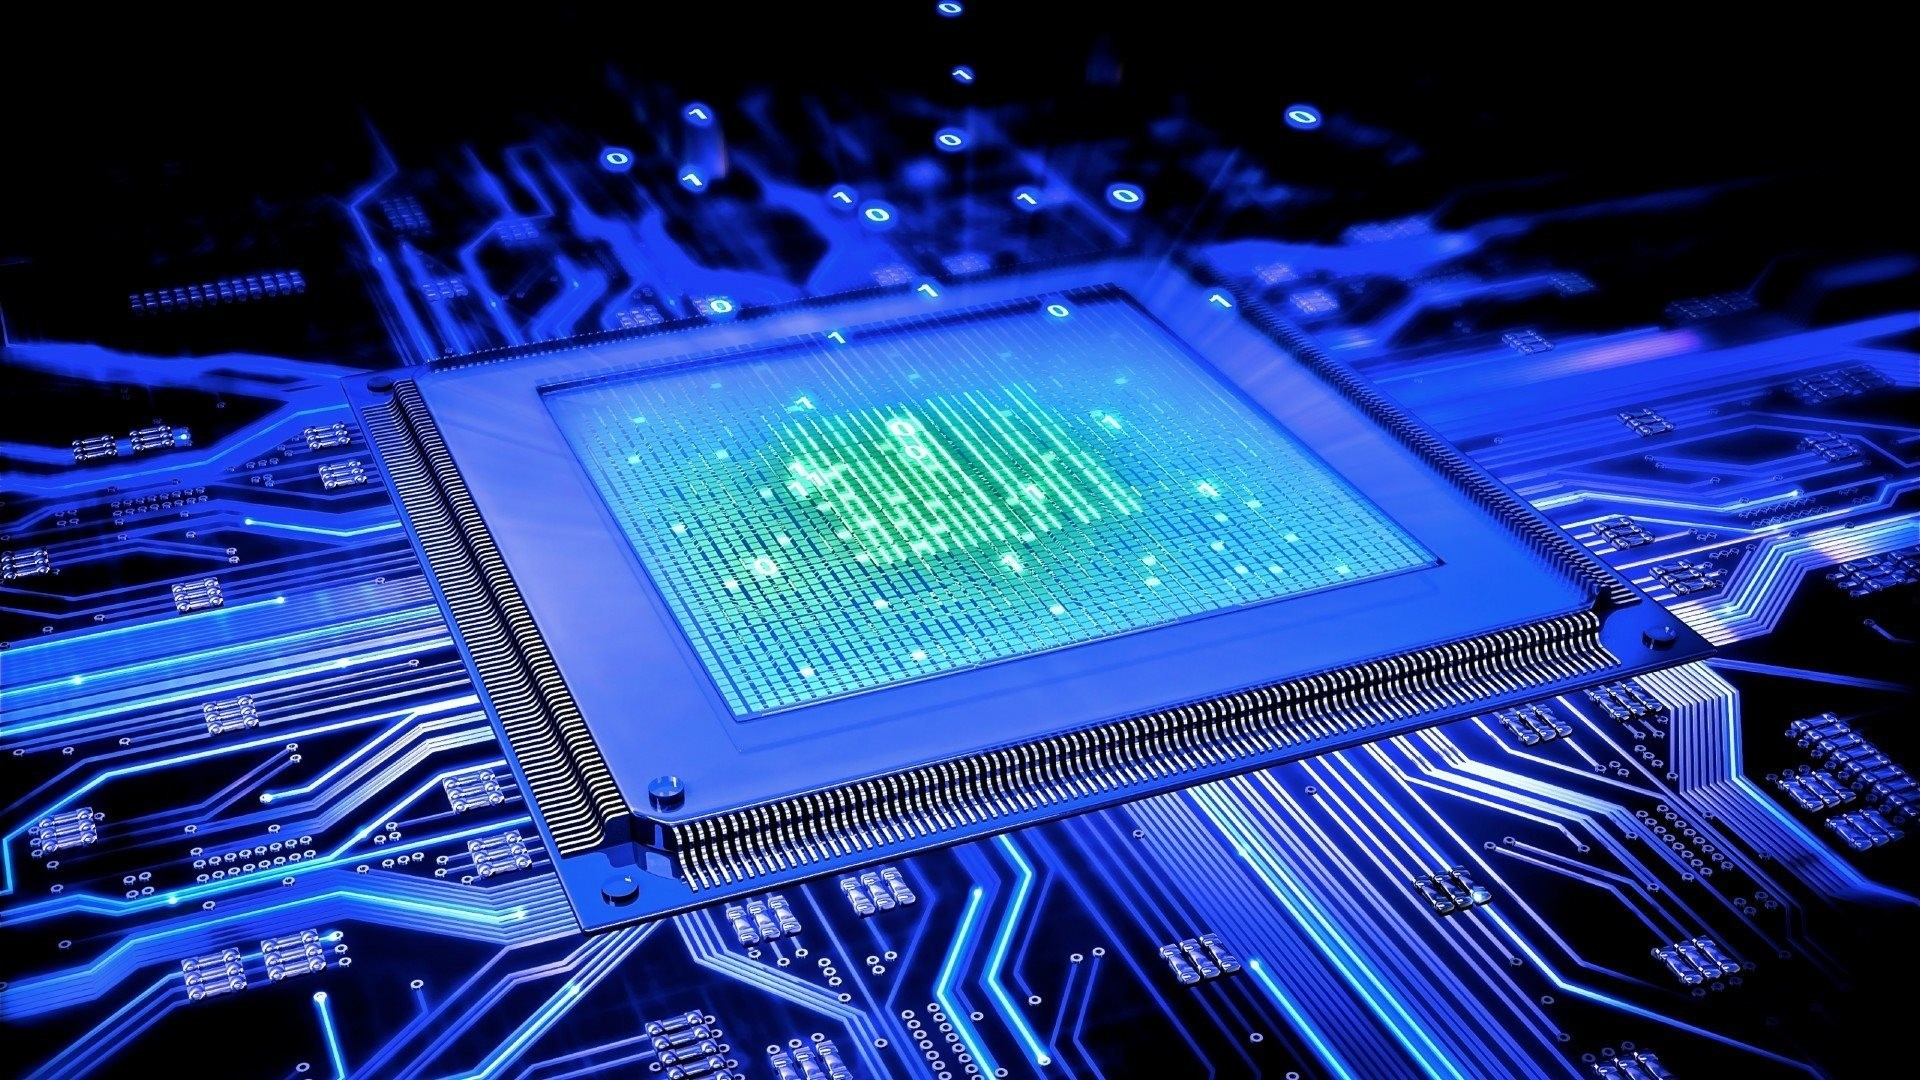 Explore Engineering Technology and more! HiTech Wallpapers Desktop Backgrounds  HD …